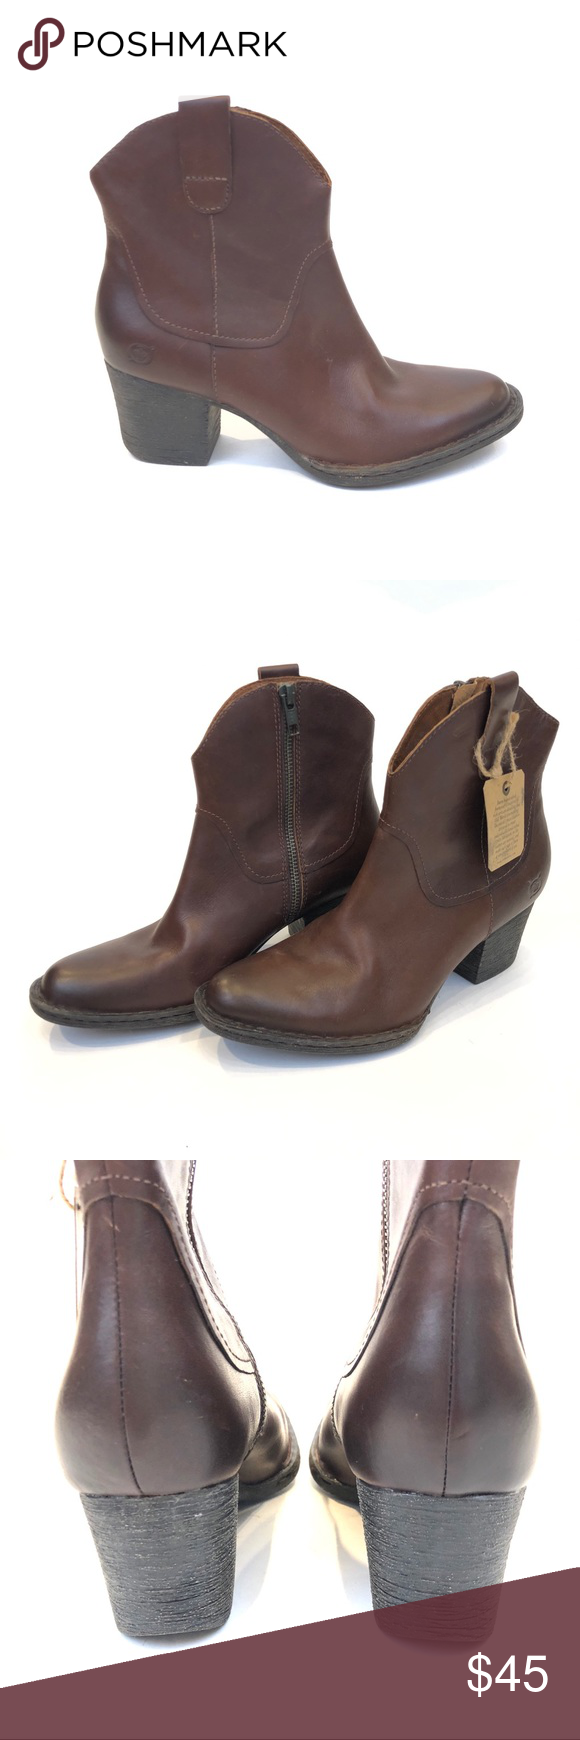 "33b2b53a63868 Born Ankle Booties in Brown, Sz 7. Leather upper, no box. Approx. 2.5"" heel.  Rugged style, ready for fall! Born Shoes Ankle Boots & Booties"